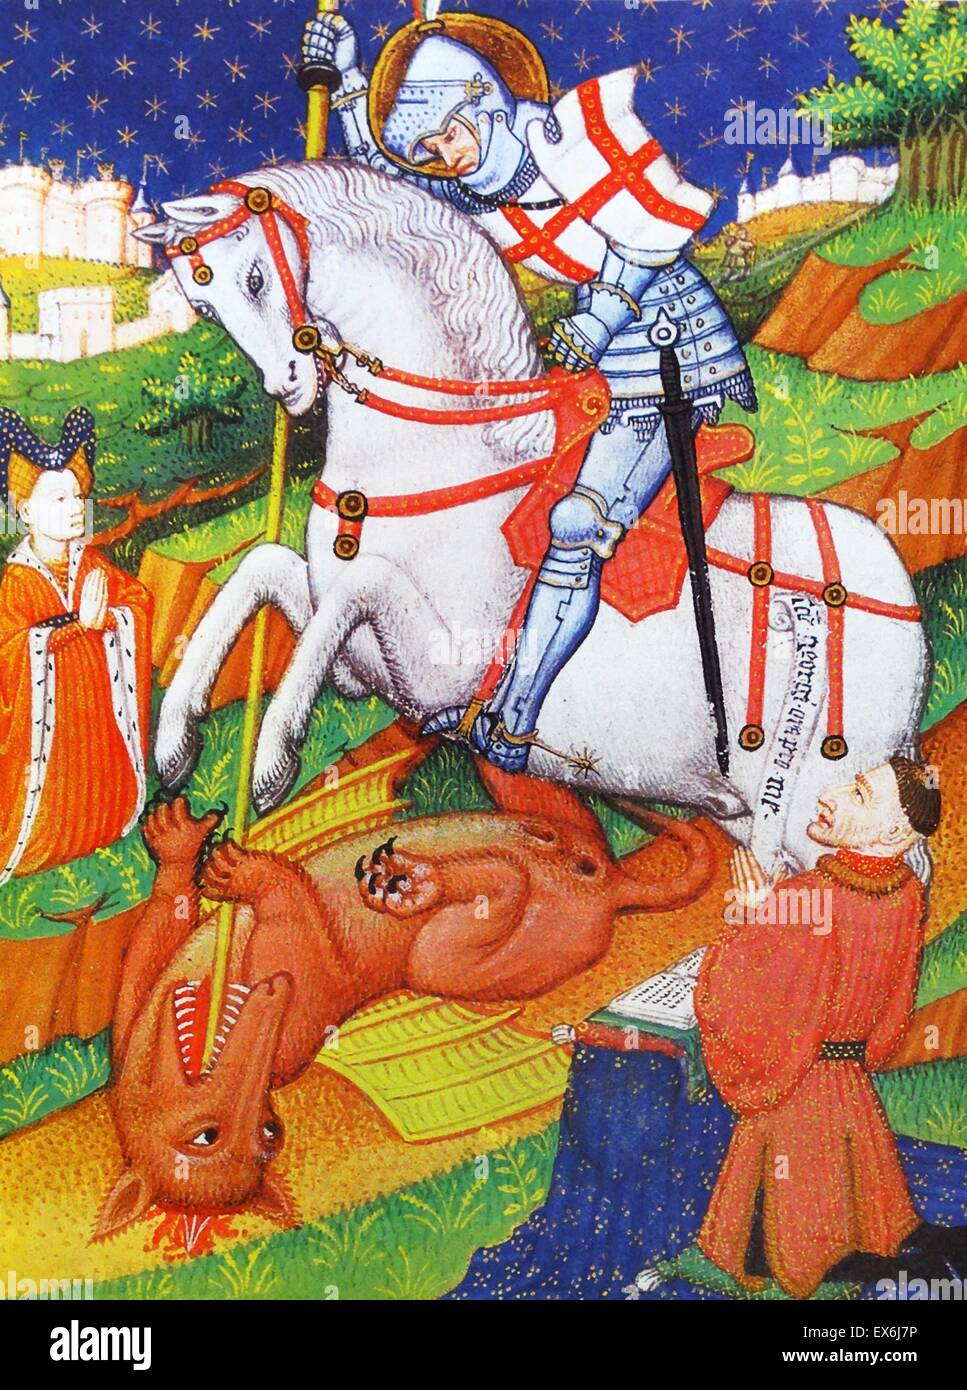 St. George killing the Dragon, an illustration from a Book of Hours, Normandy, 1430-40. From The Island Race, a - Stock Image